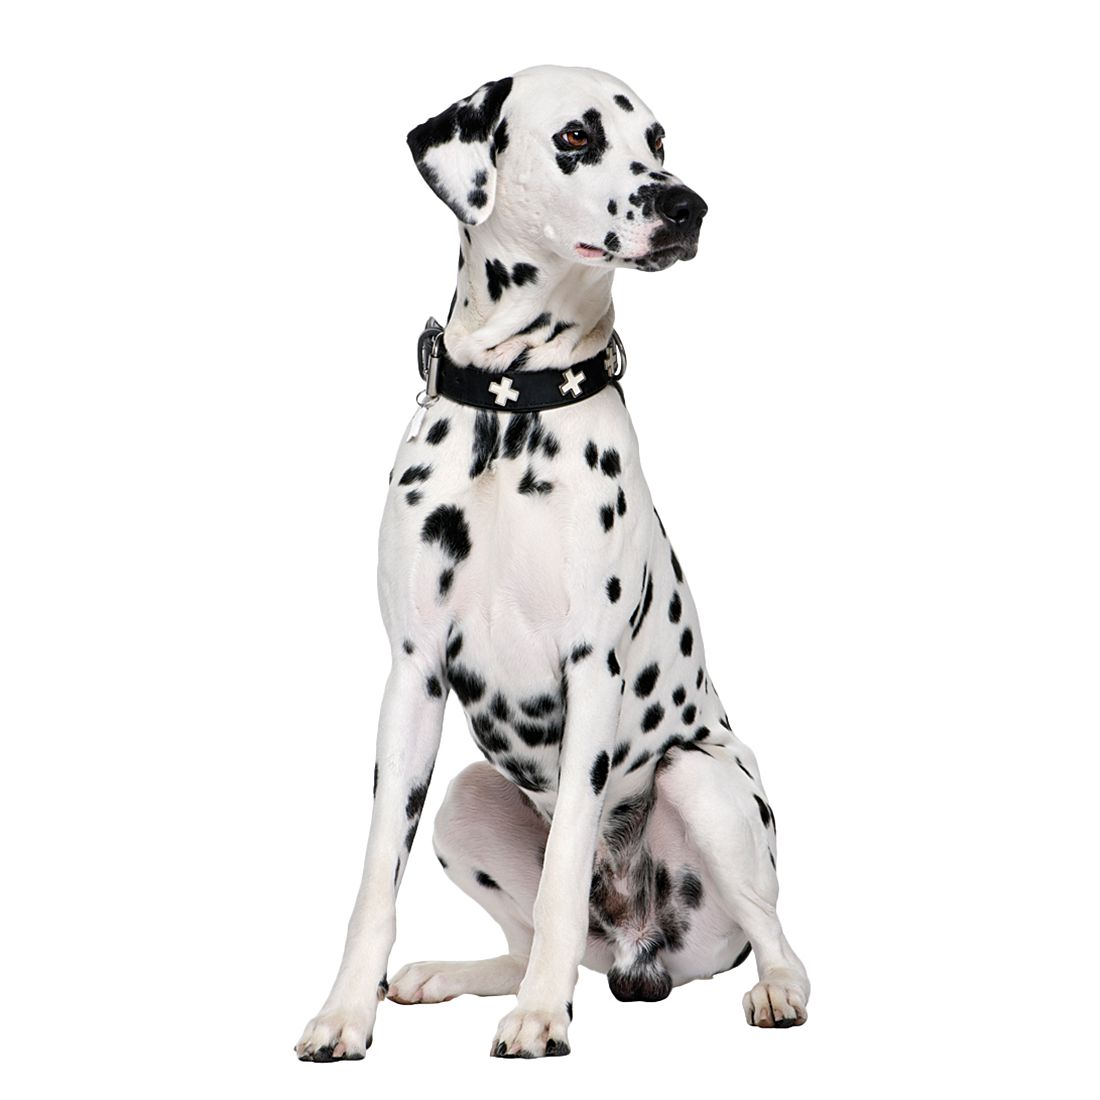 dalmatian fire dog pictures to pin on pinterest tattooskid. Black Bedroom Furniture Sets. Home Design Ideas